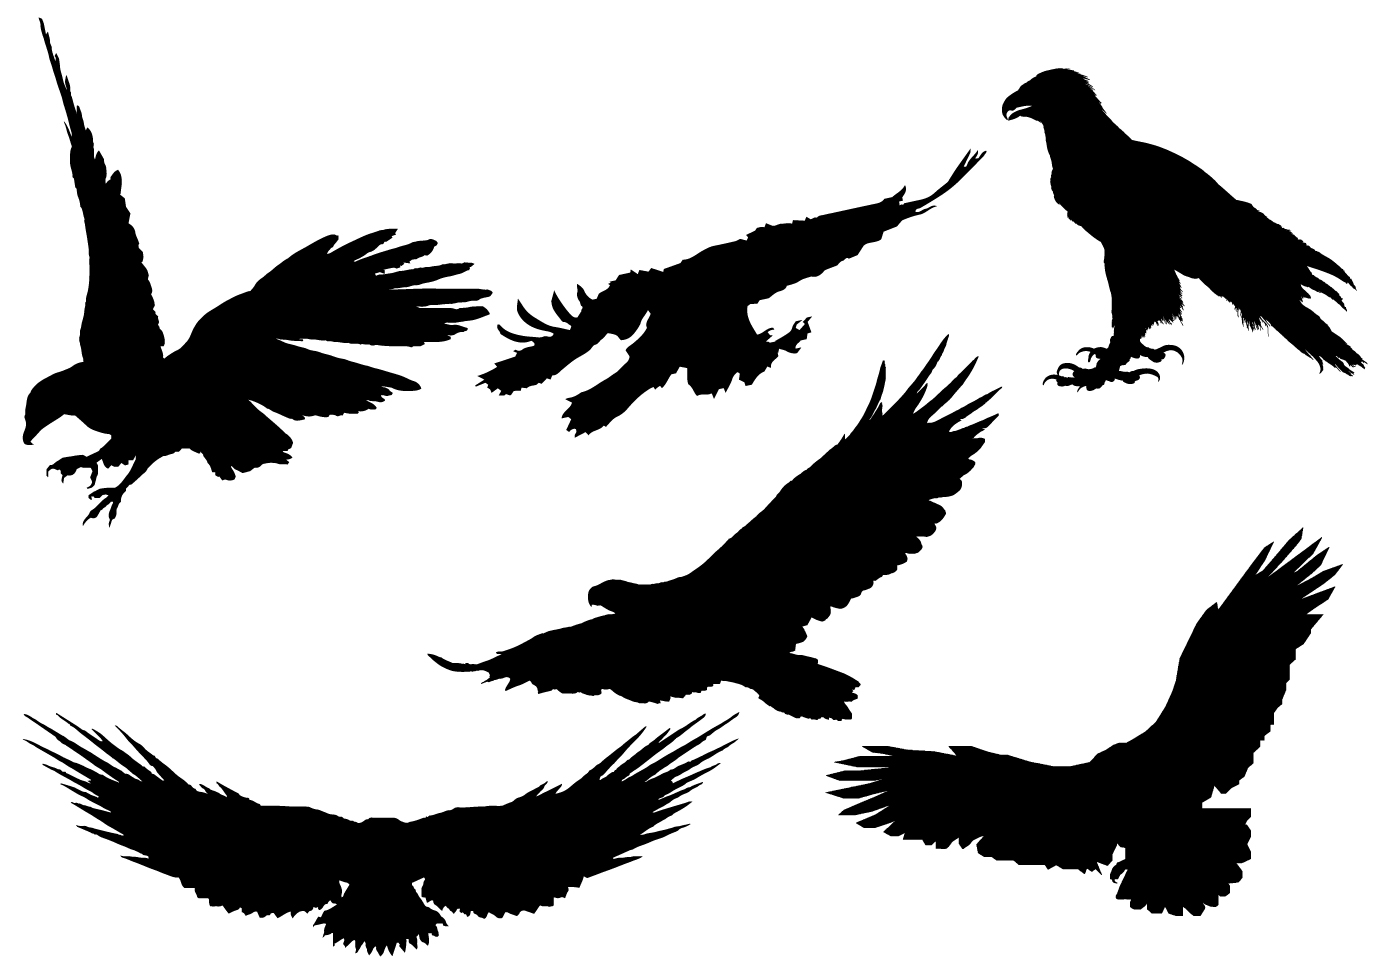 1400x980 Flying Bird Silhouette Archives Page 2 Of 2 My Graphic Hunt